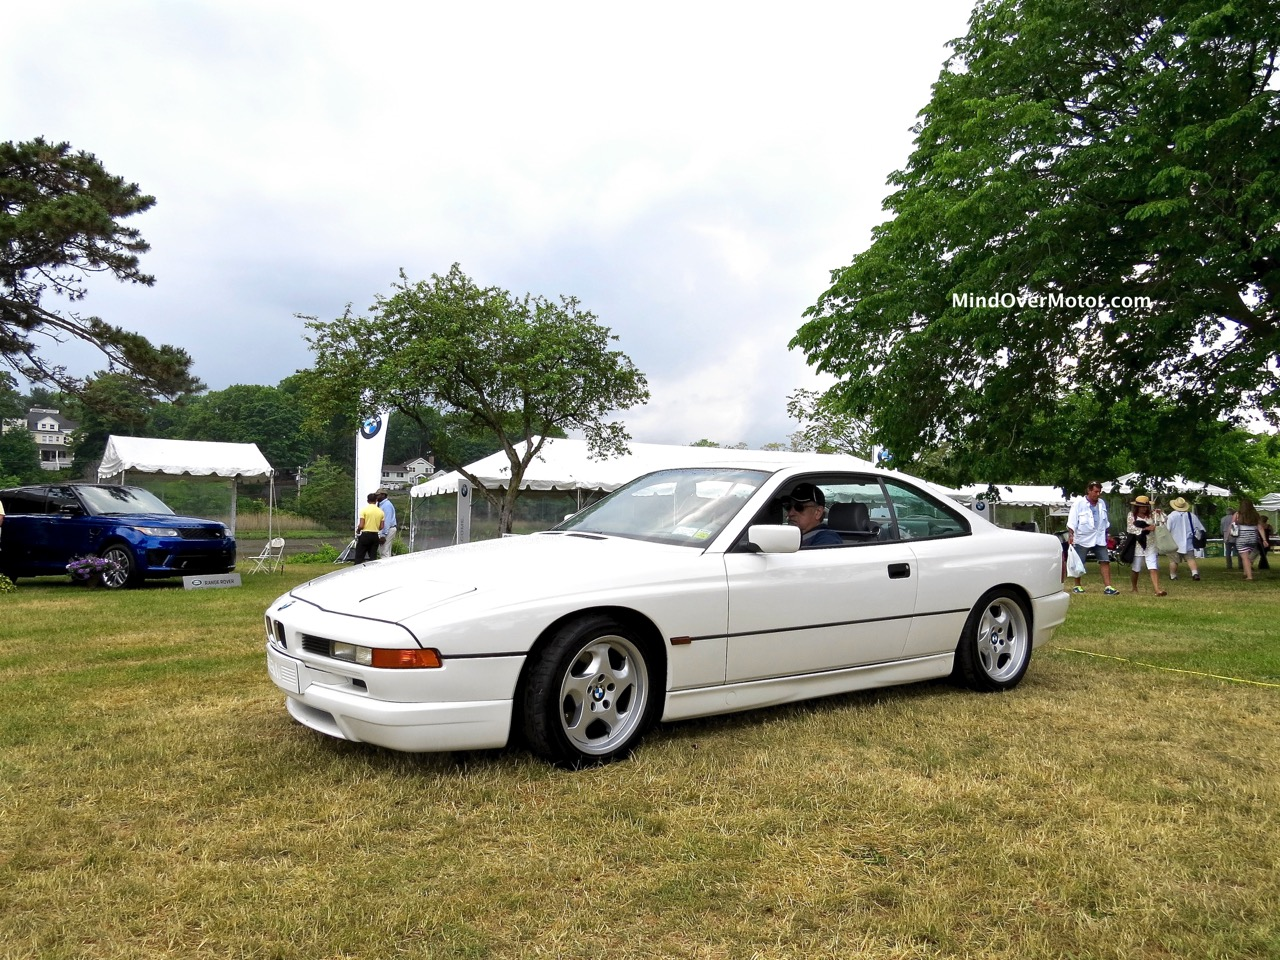 BMW 850CSi Headlights Down Front